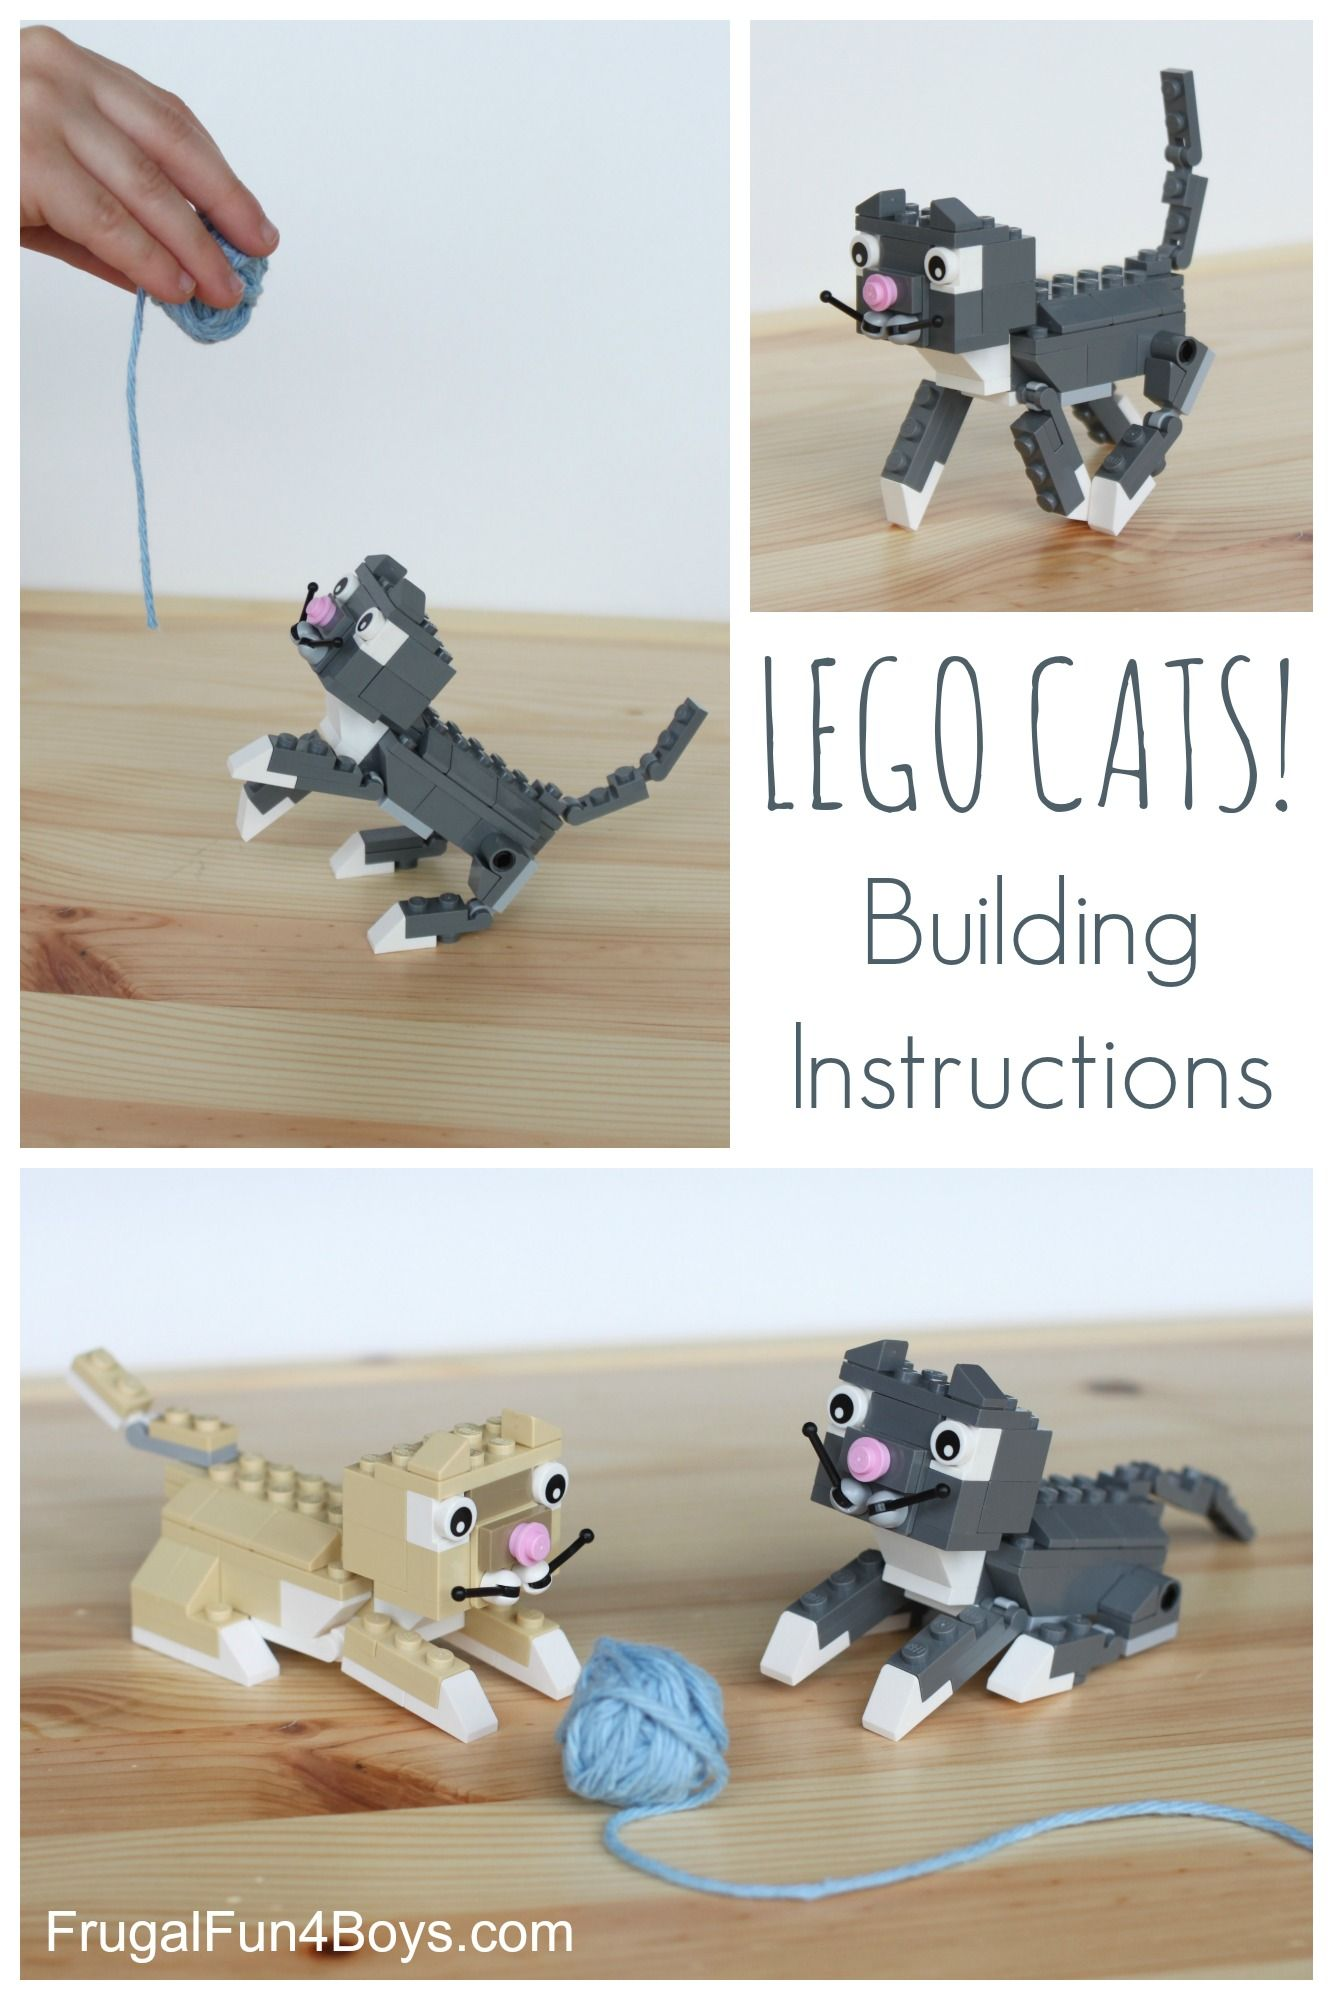 Lego Cats Building Instructions Lego Play Learning And Building